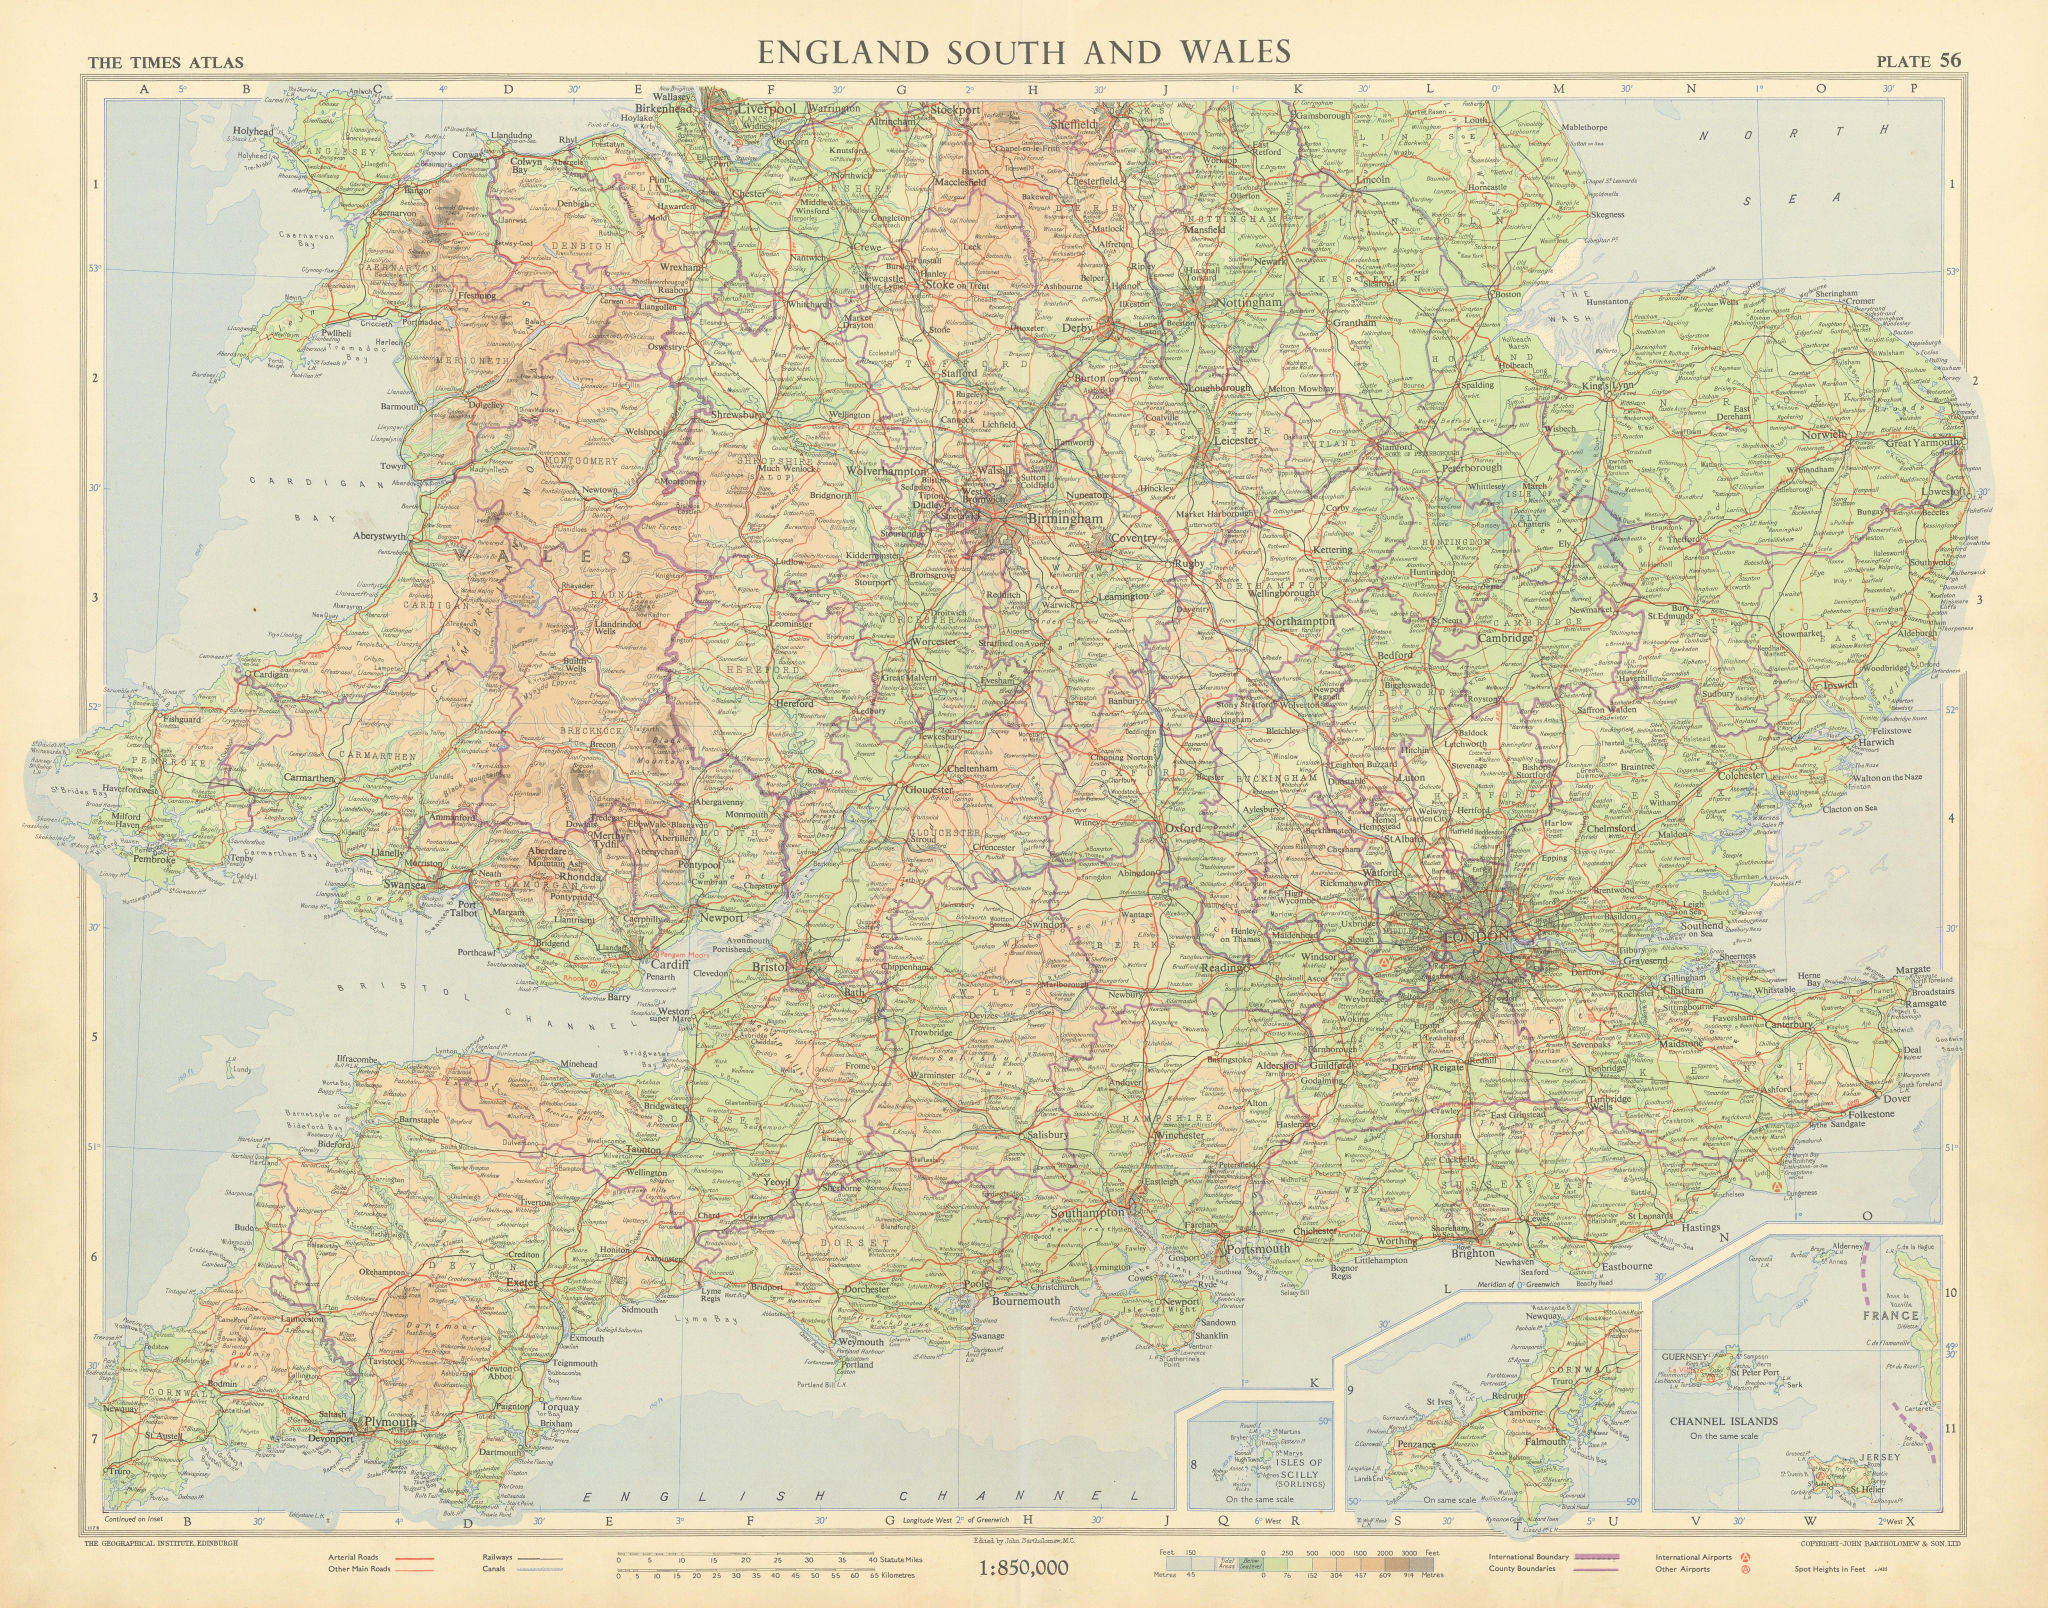 Southern England and Wales. Road network pre motorways. TIMES 1955 old map